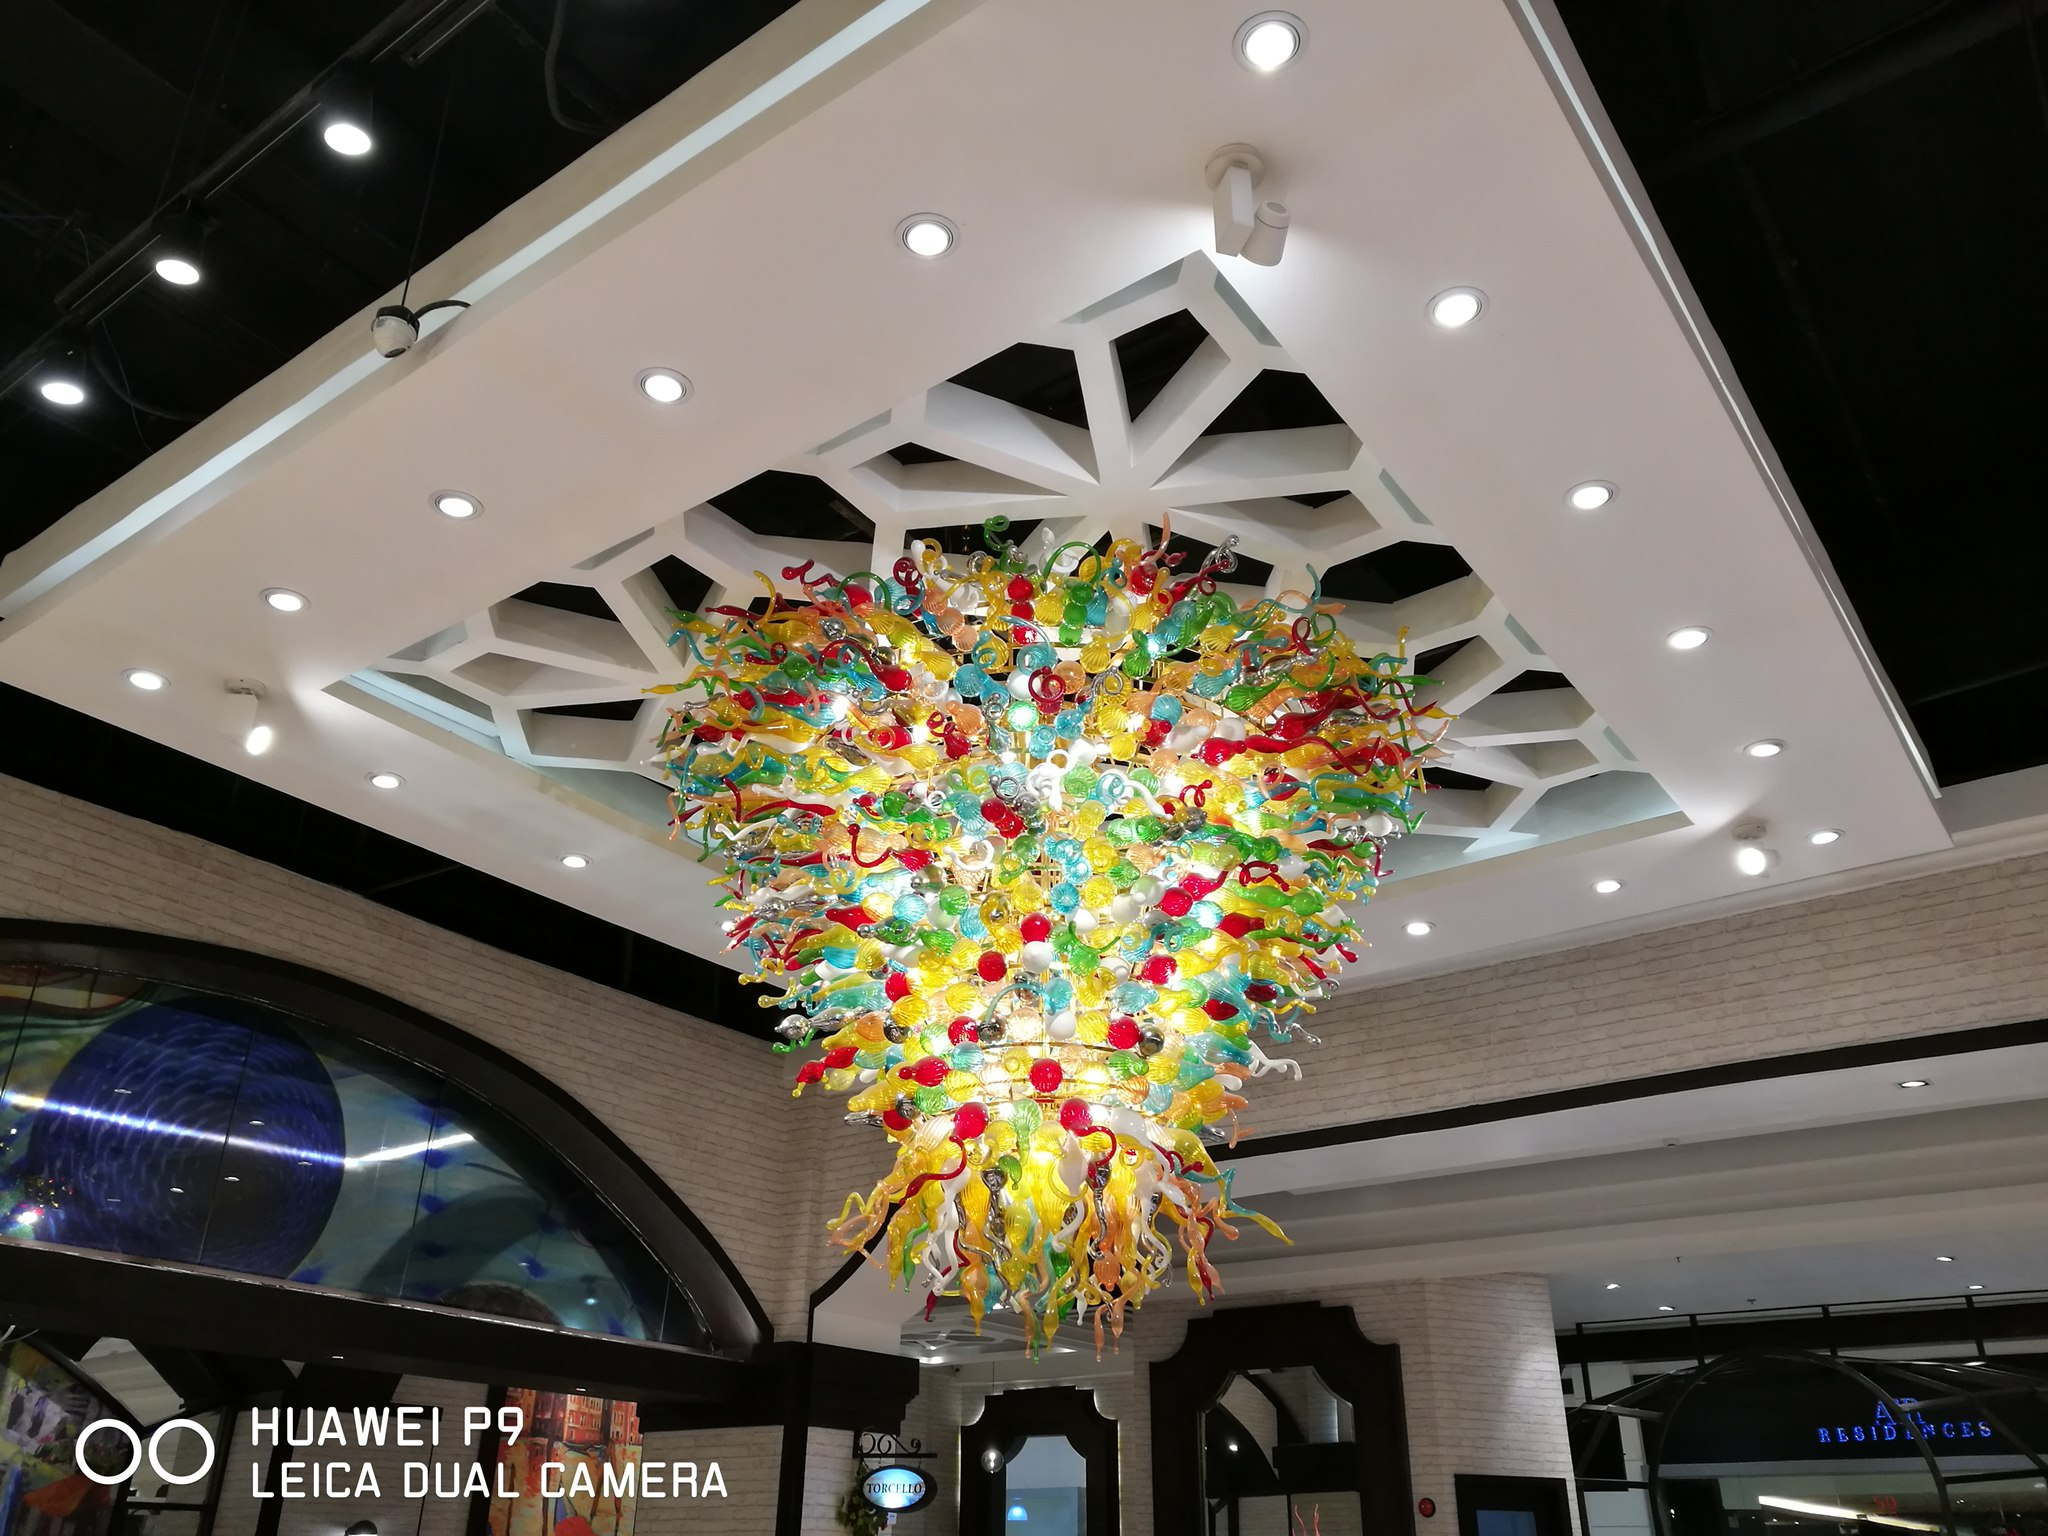 small_Huawei P9 Leica Chandelier Shot